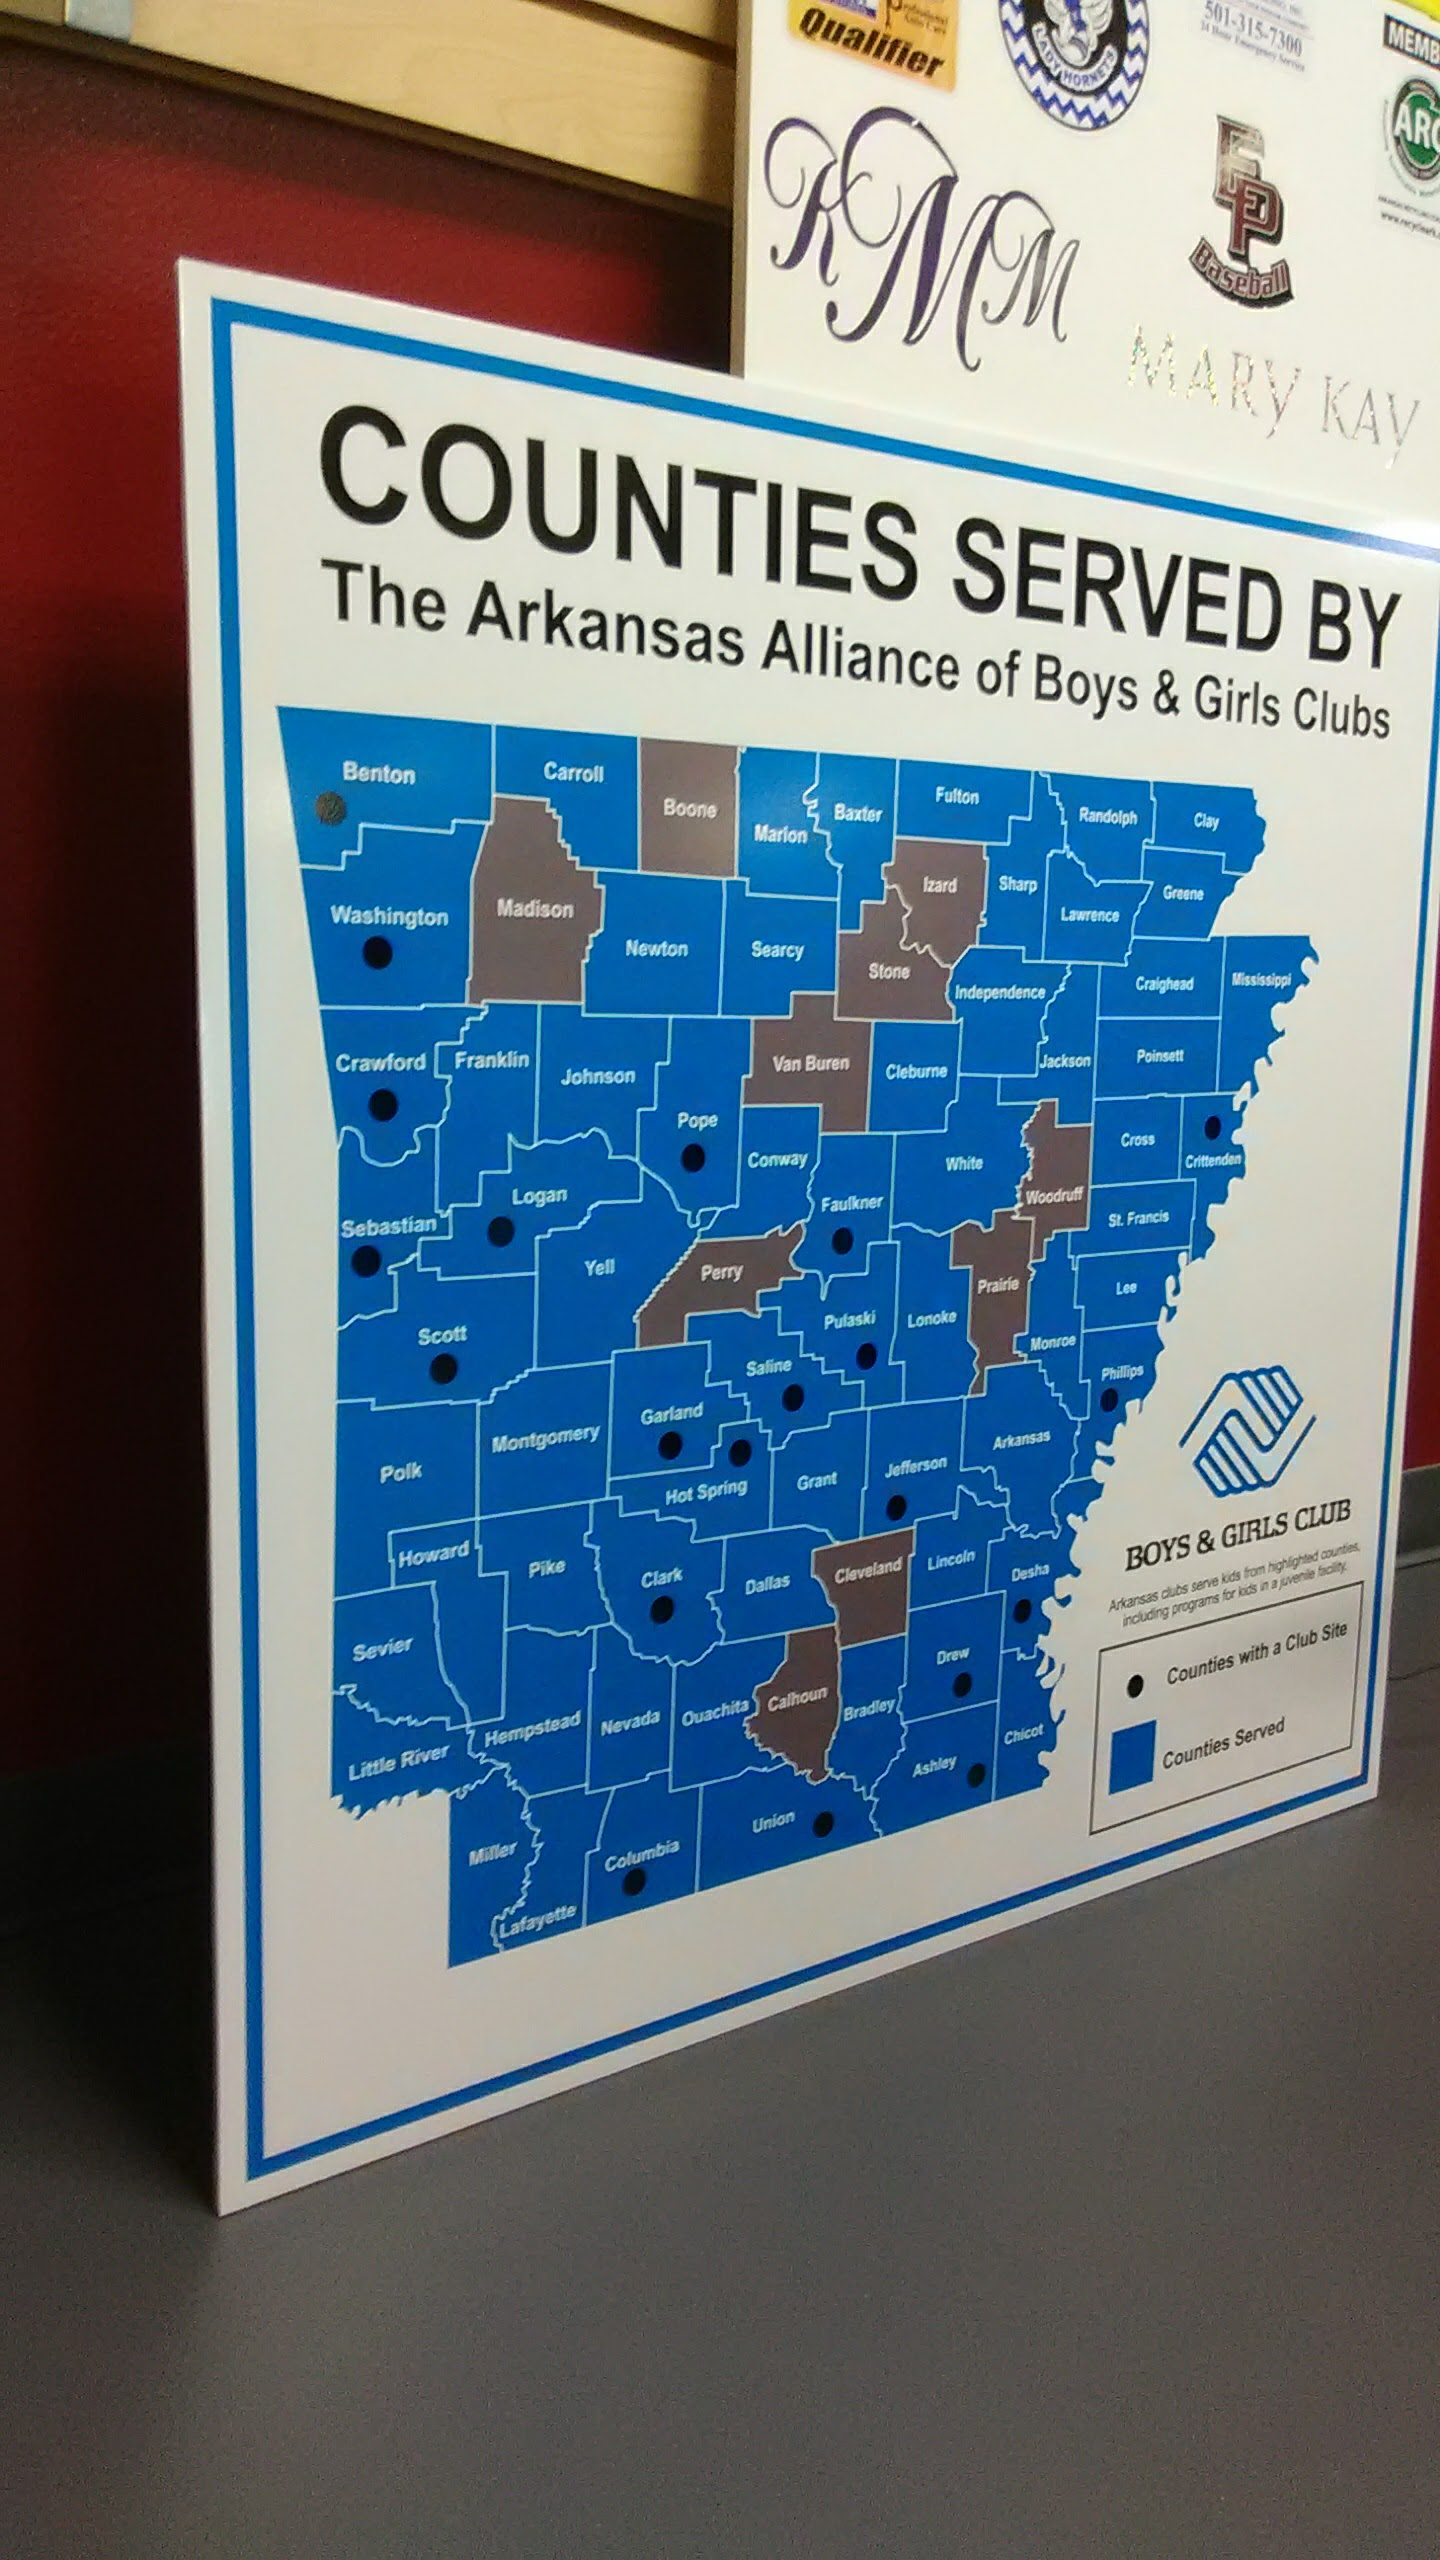 Boys & Girls Club Counties Served